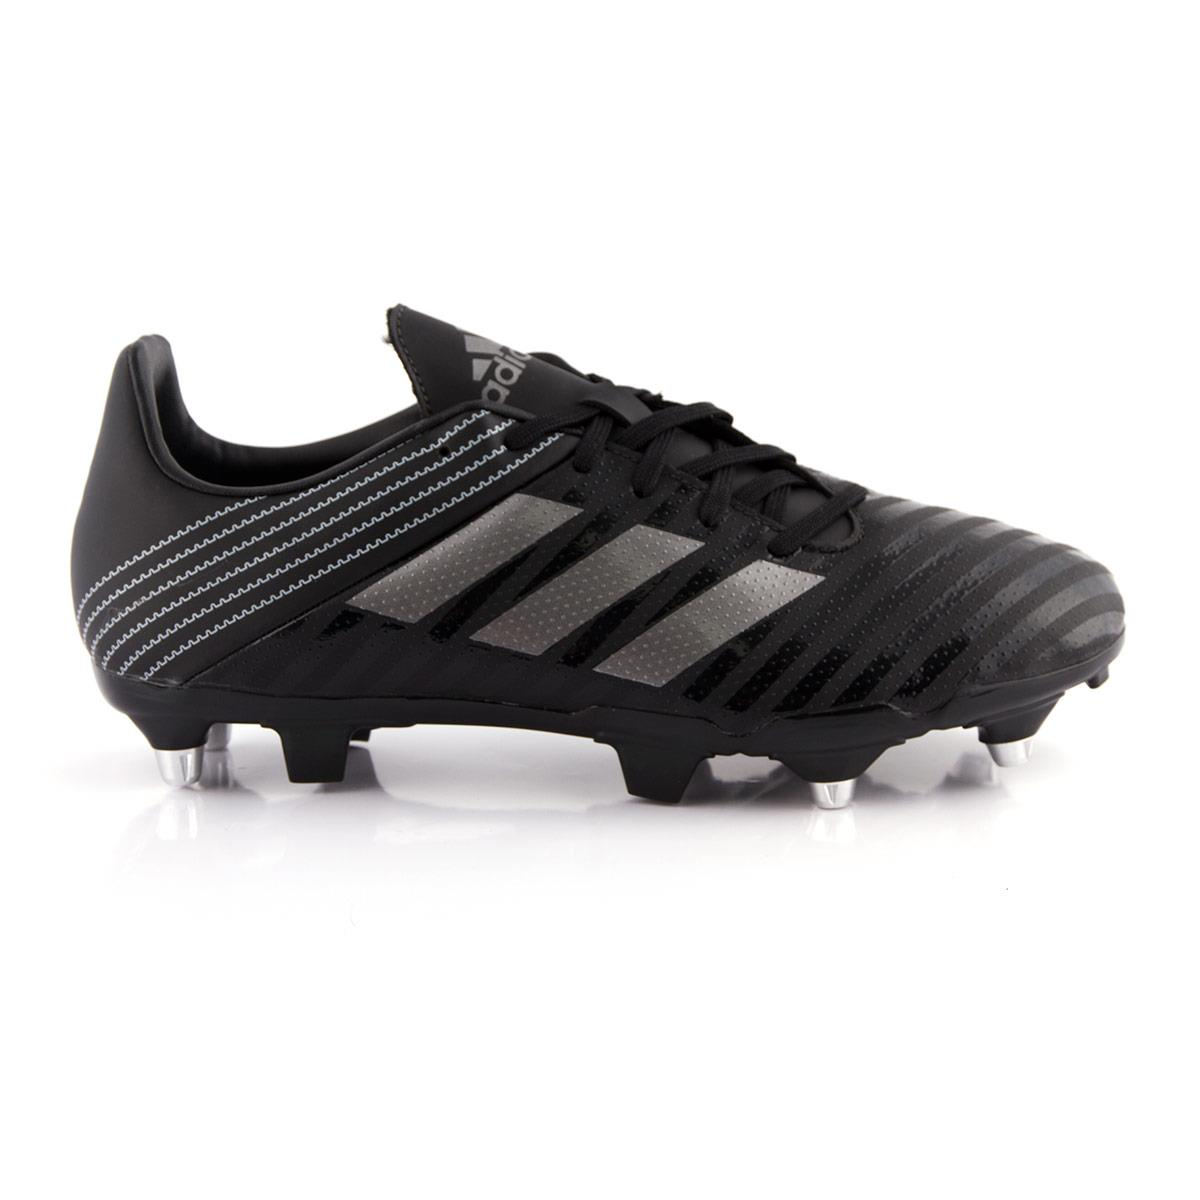 de95aa8c1d7 adidas Malice SG Rugby Boots - Core Black - Rugby City